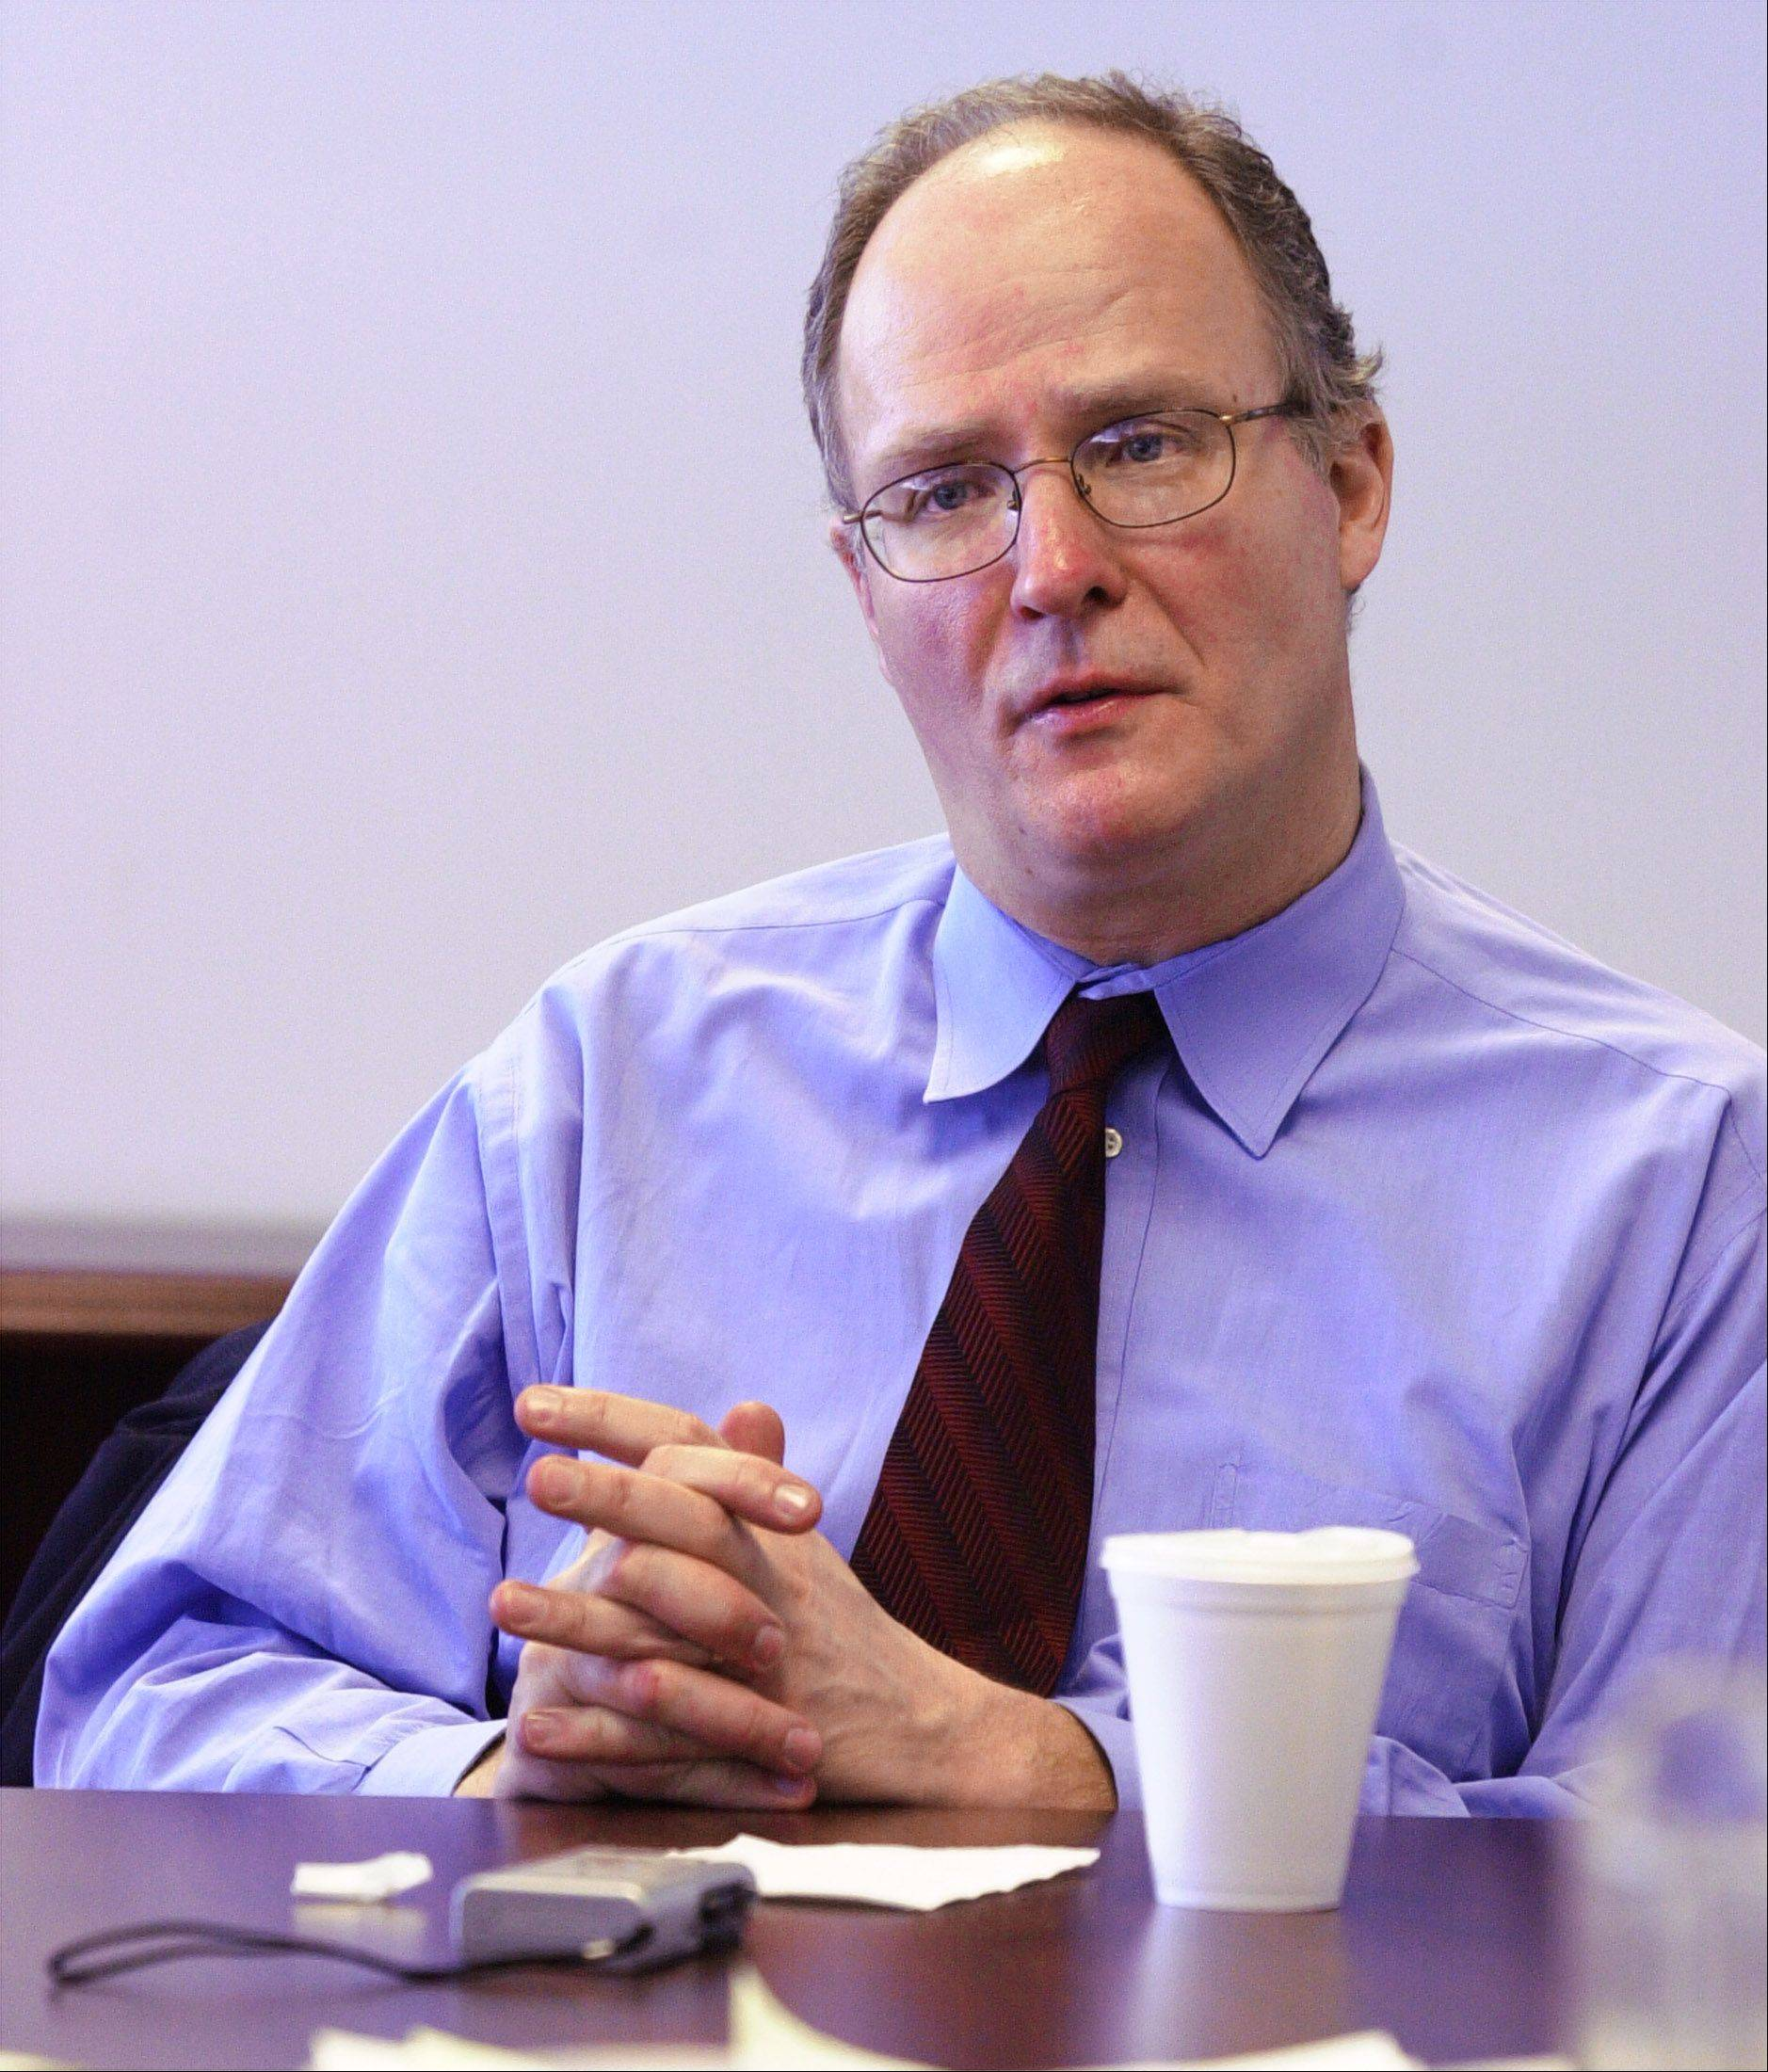 Paul Vallas has been picked by Gov. Pat Quinn to be his running mate in 2014.